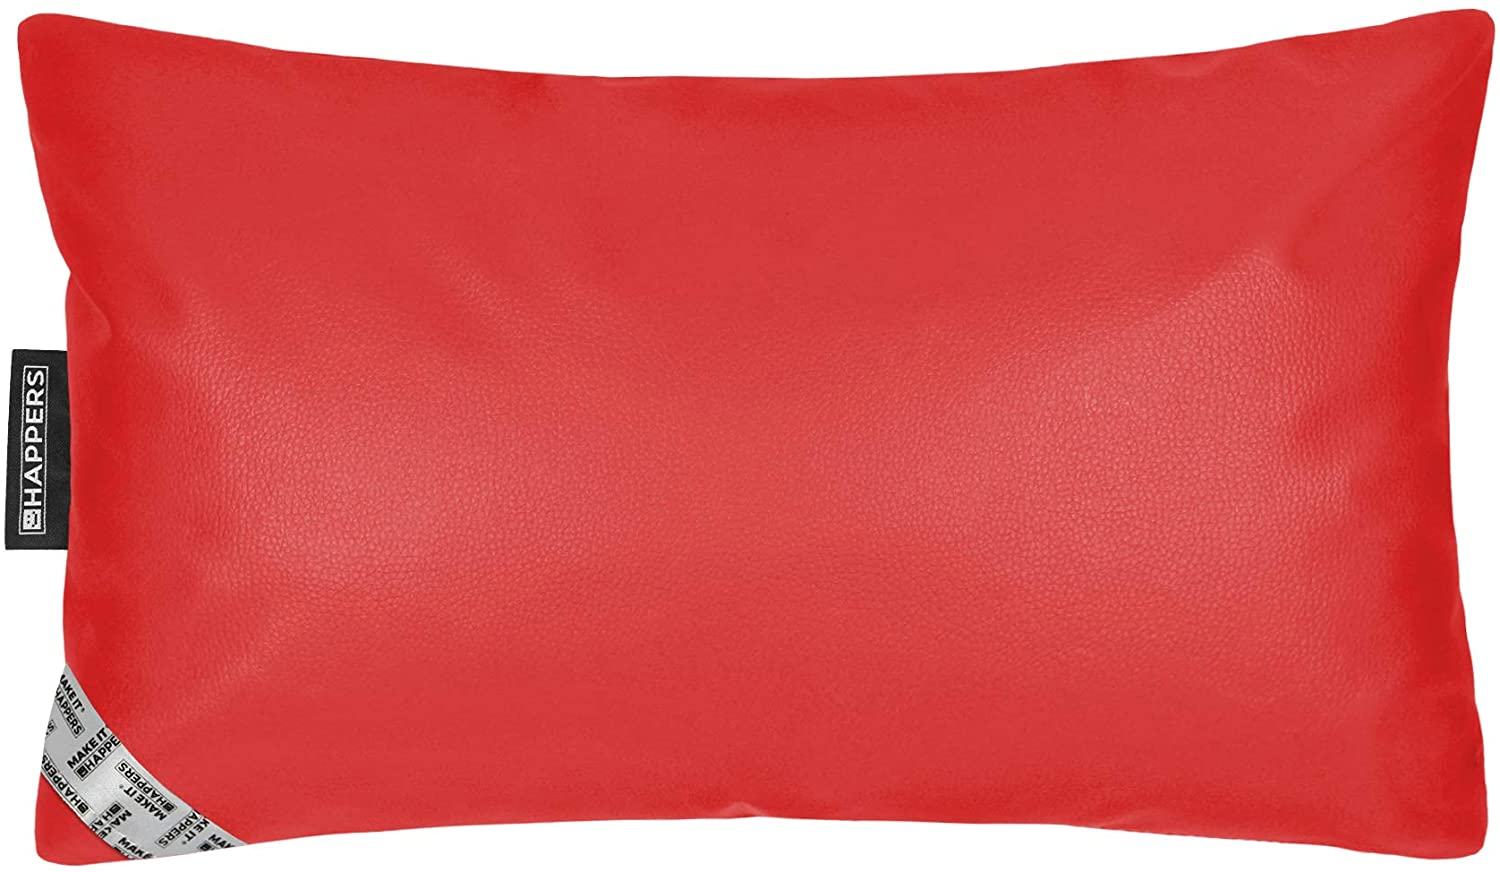 HAPPERS Cojin 50x30 Polipiel Outdoor Rojo